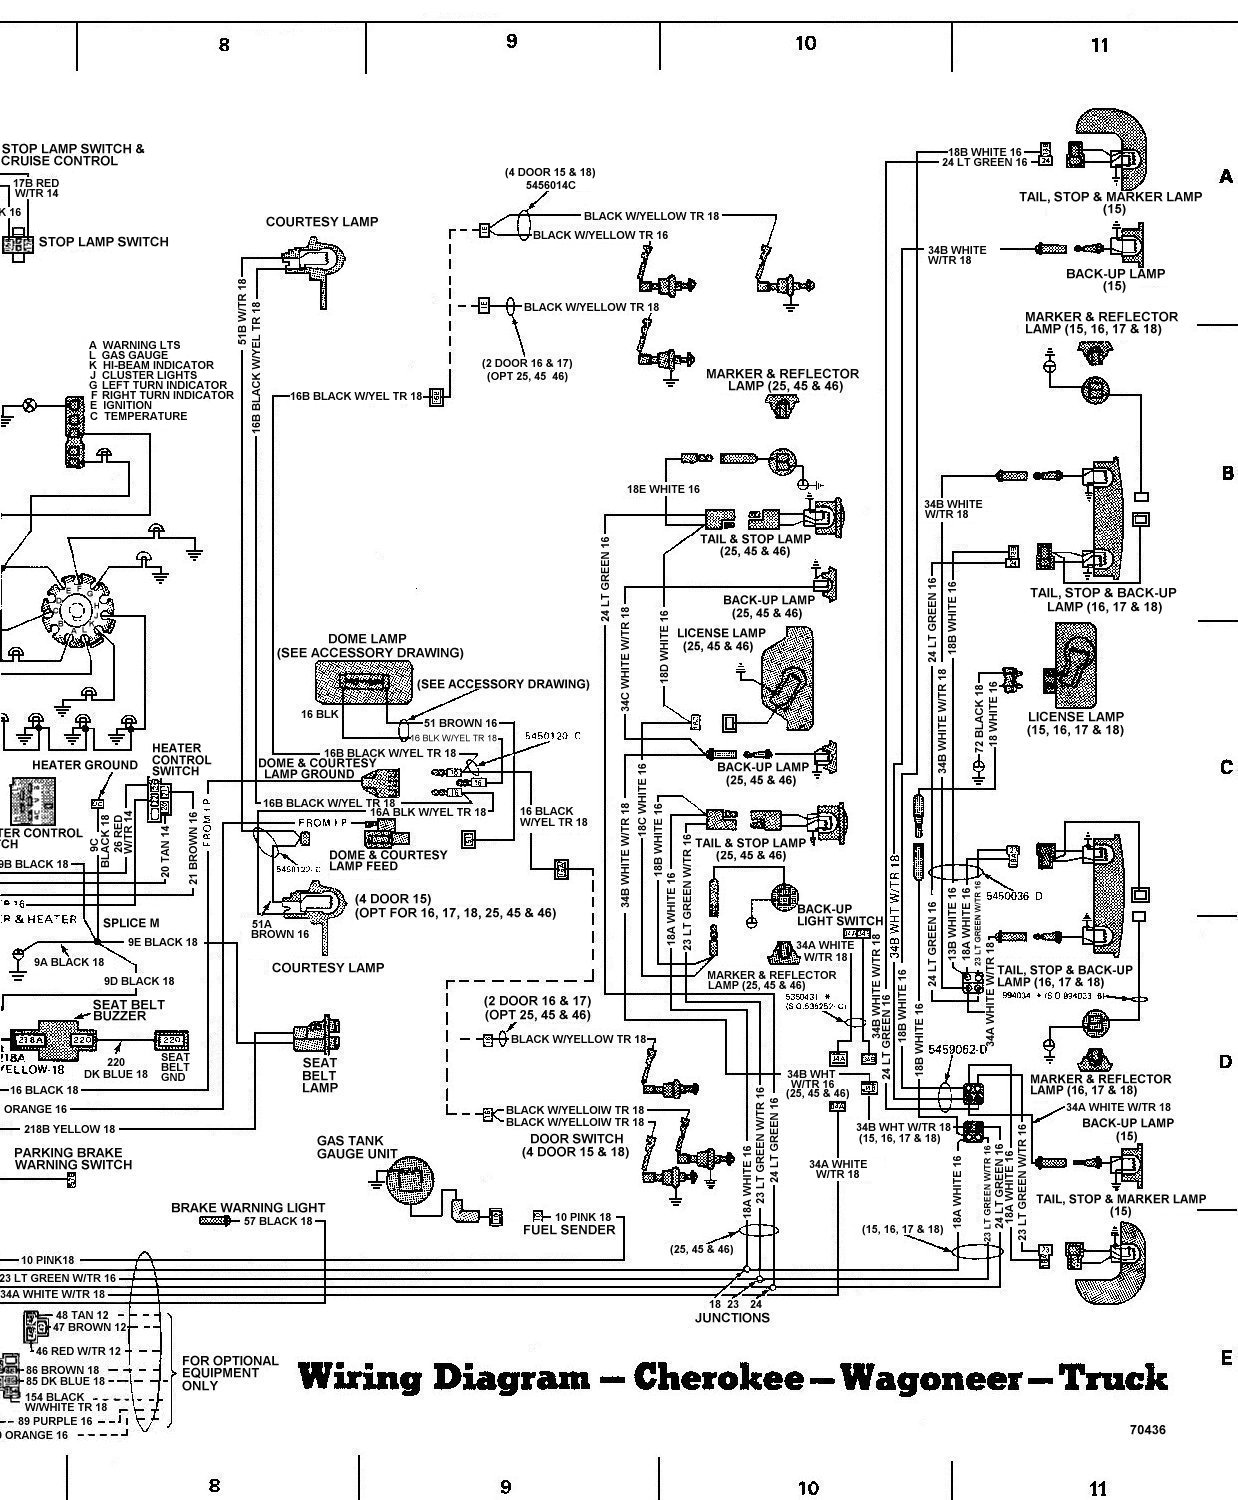 Wiring Diagram Jeep Cherokee